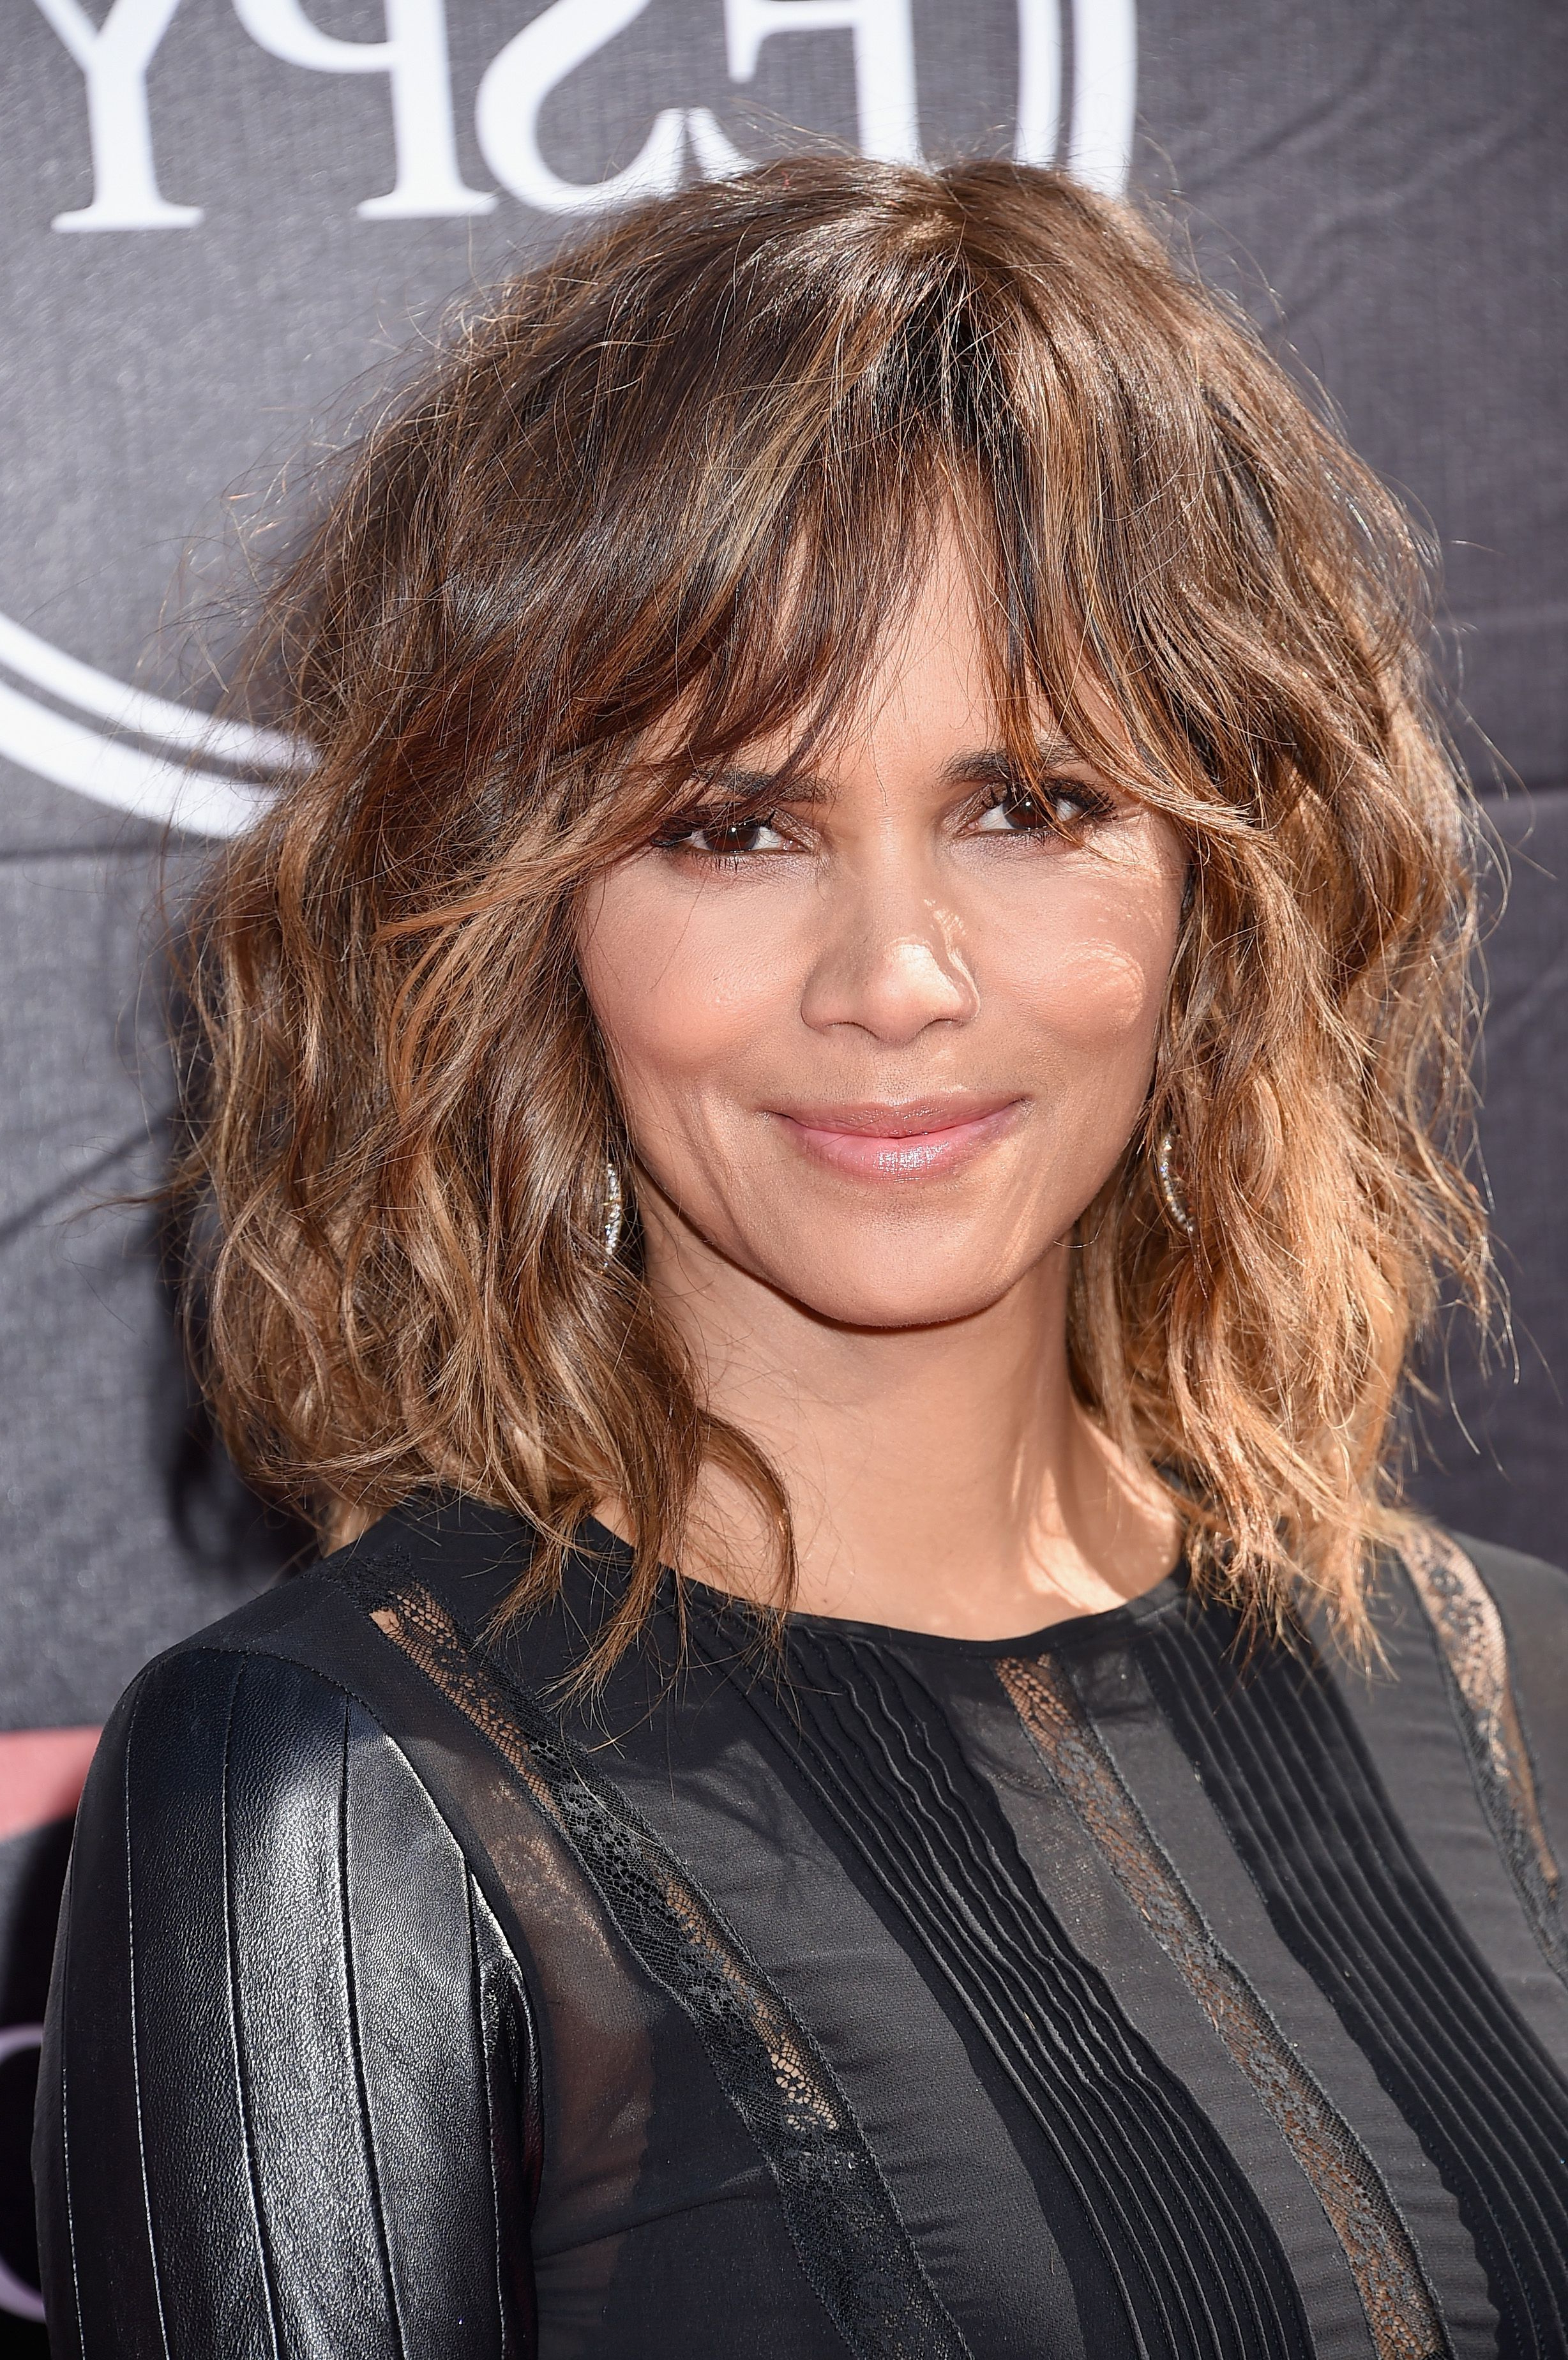 35 Best Hairstyles With Bangs – Photos Of Celebrity Haircuts With Bangs With 2020 Long Side Parted Haircuts With Razored Layers (View 11 of 20)